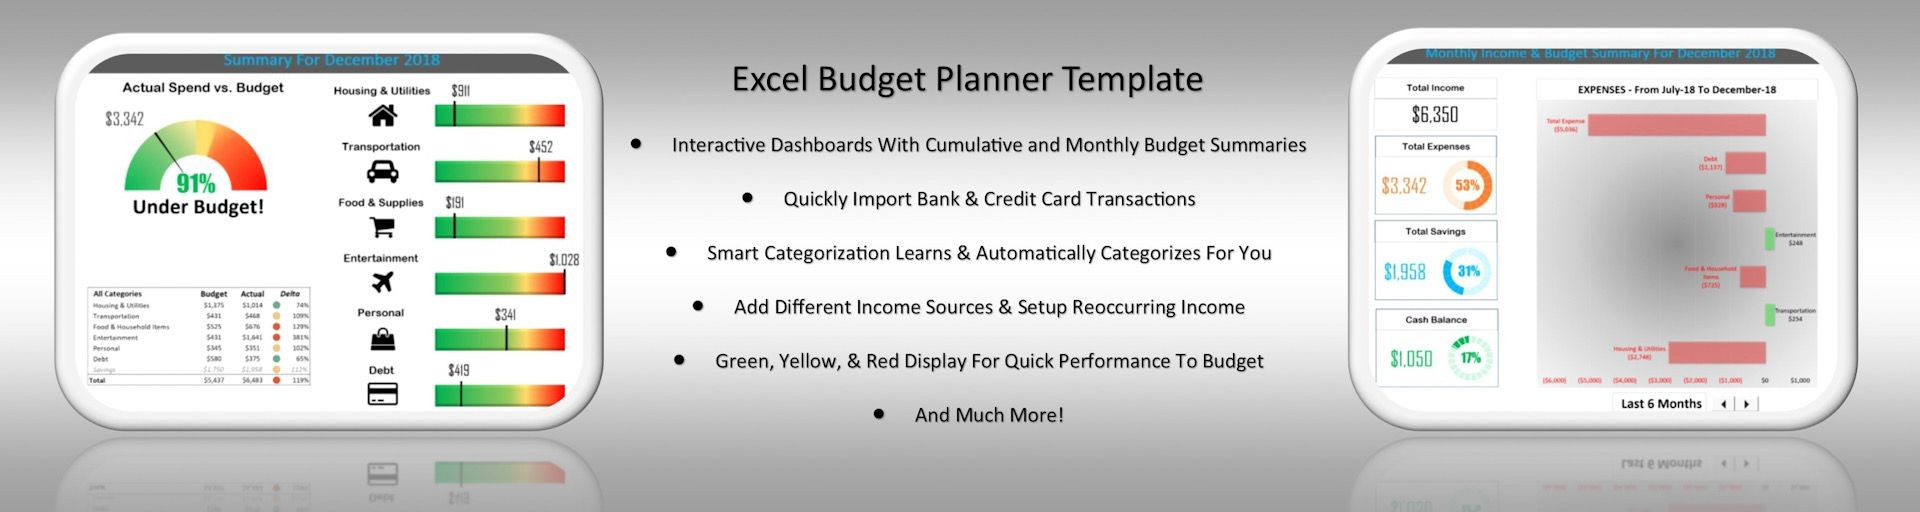 004 Frightening Excel Budget Spreadsheet Template Design  Tracker Free Household Monthly1920